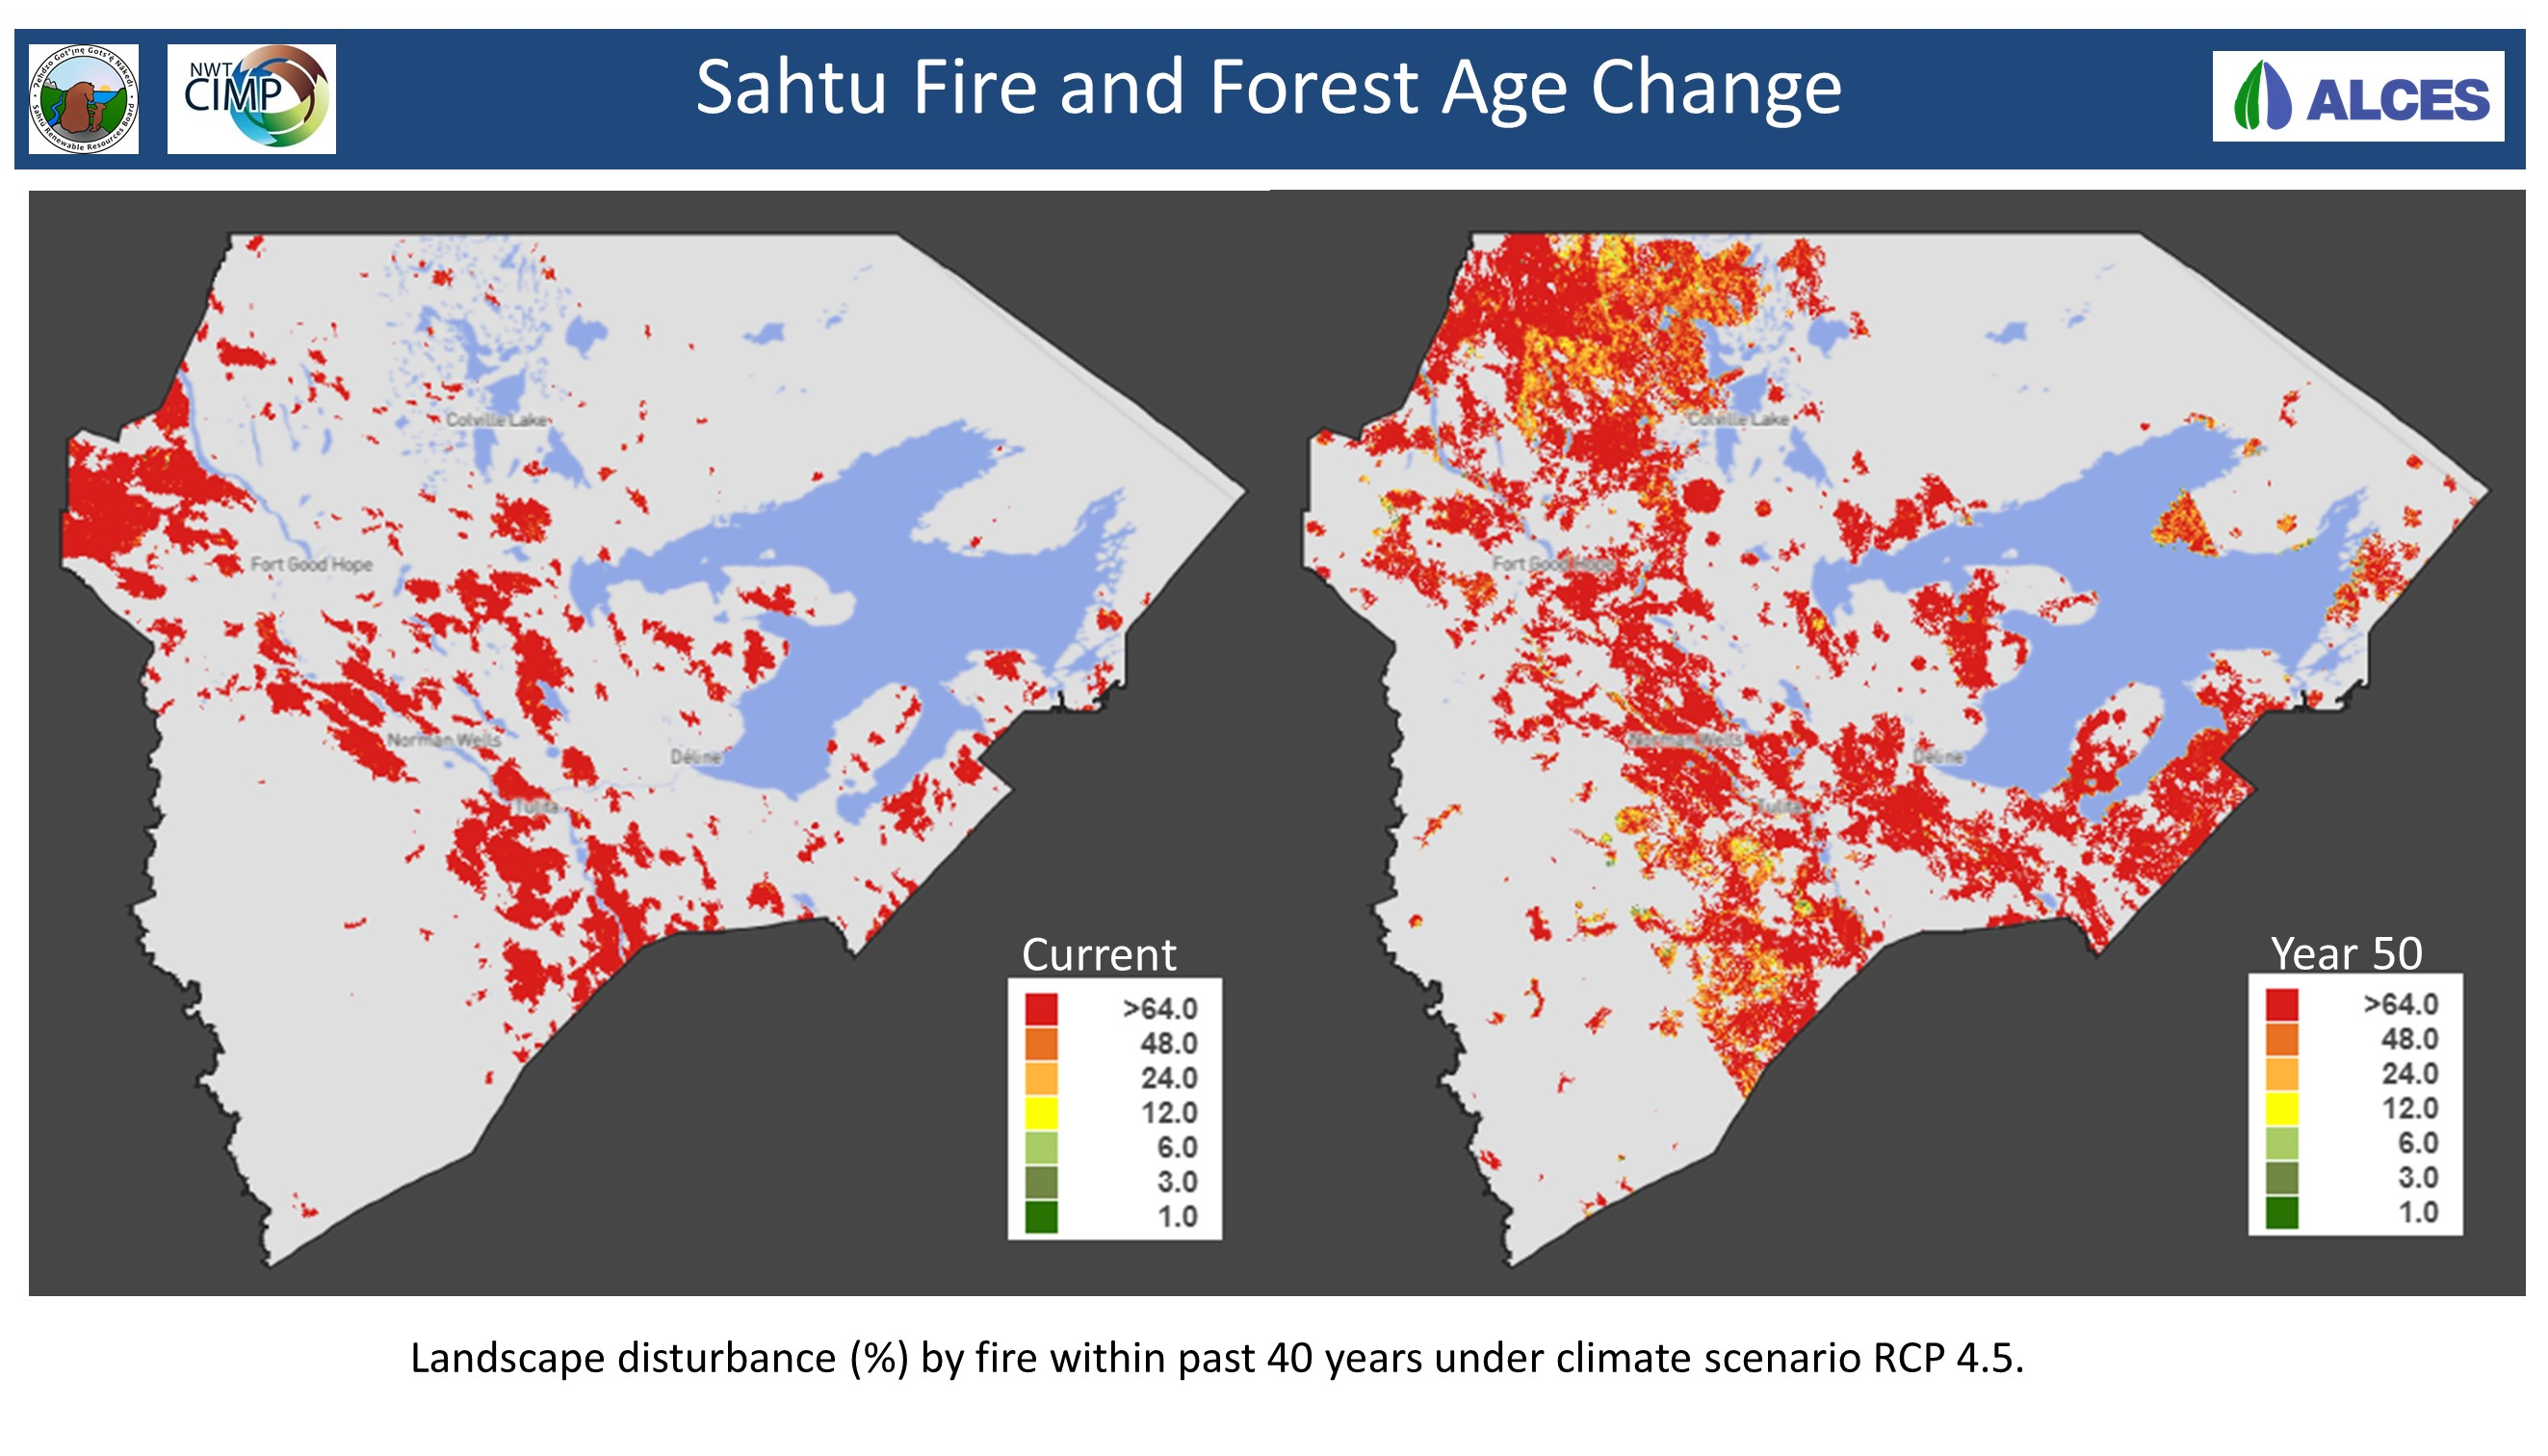 Sahtu Fire and Forest Change